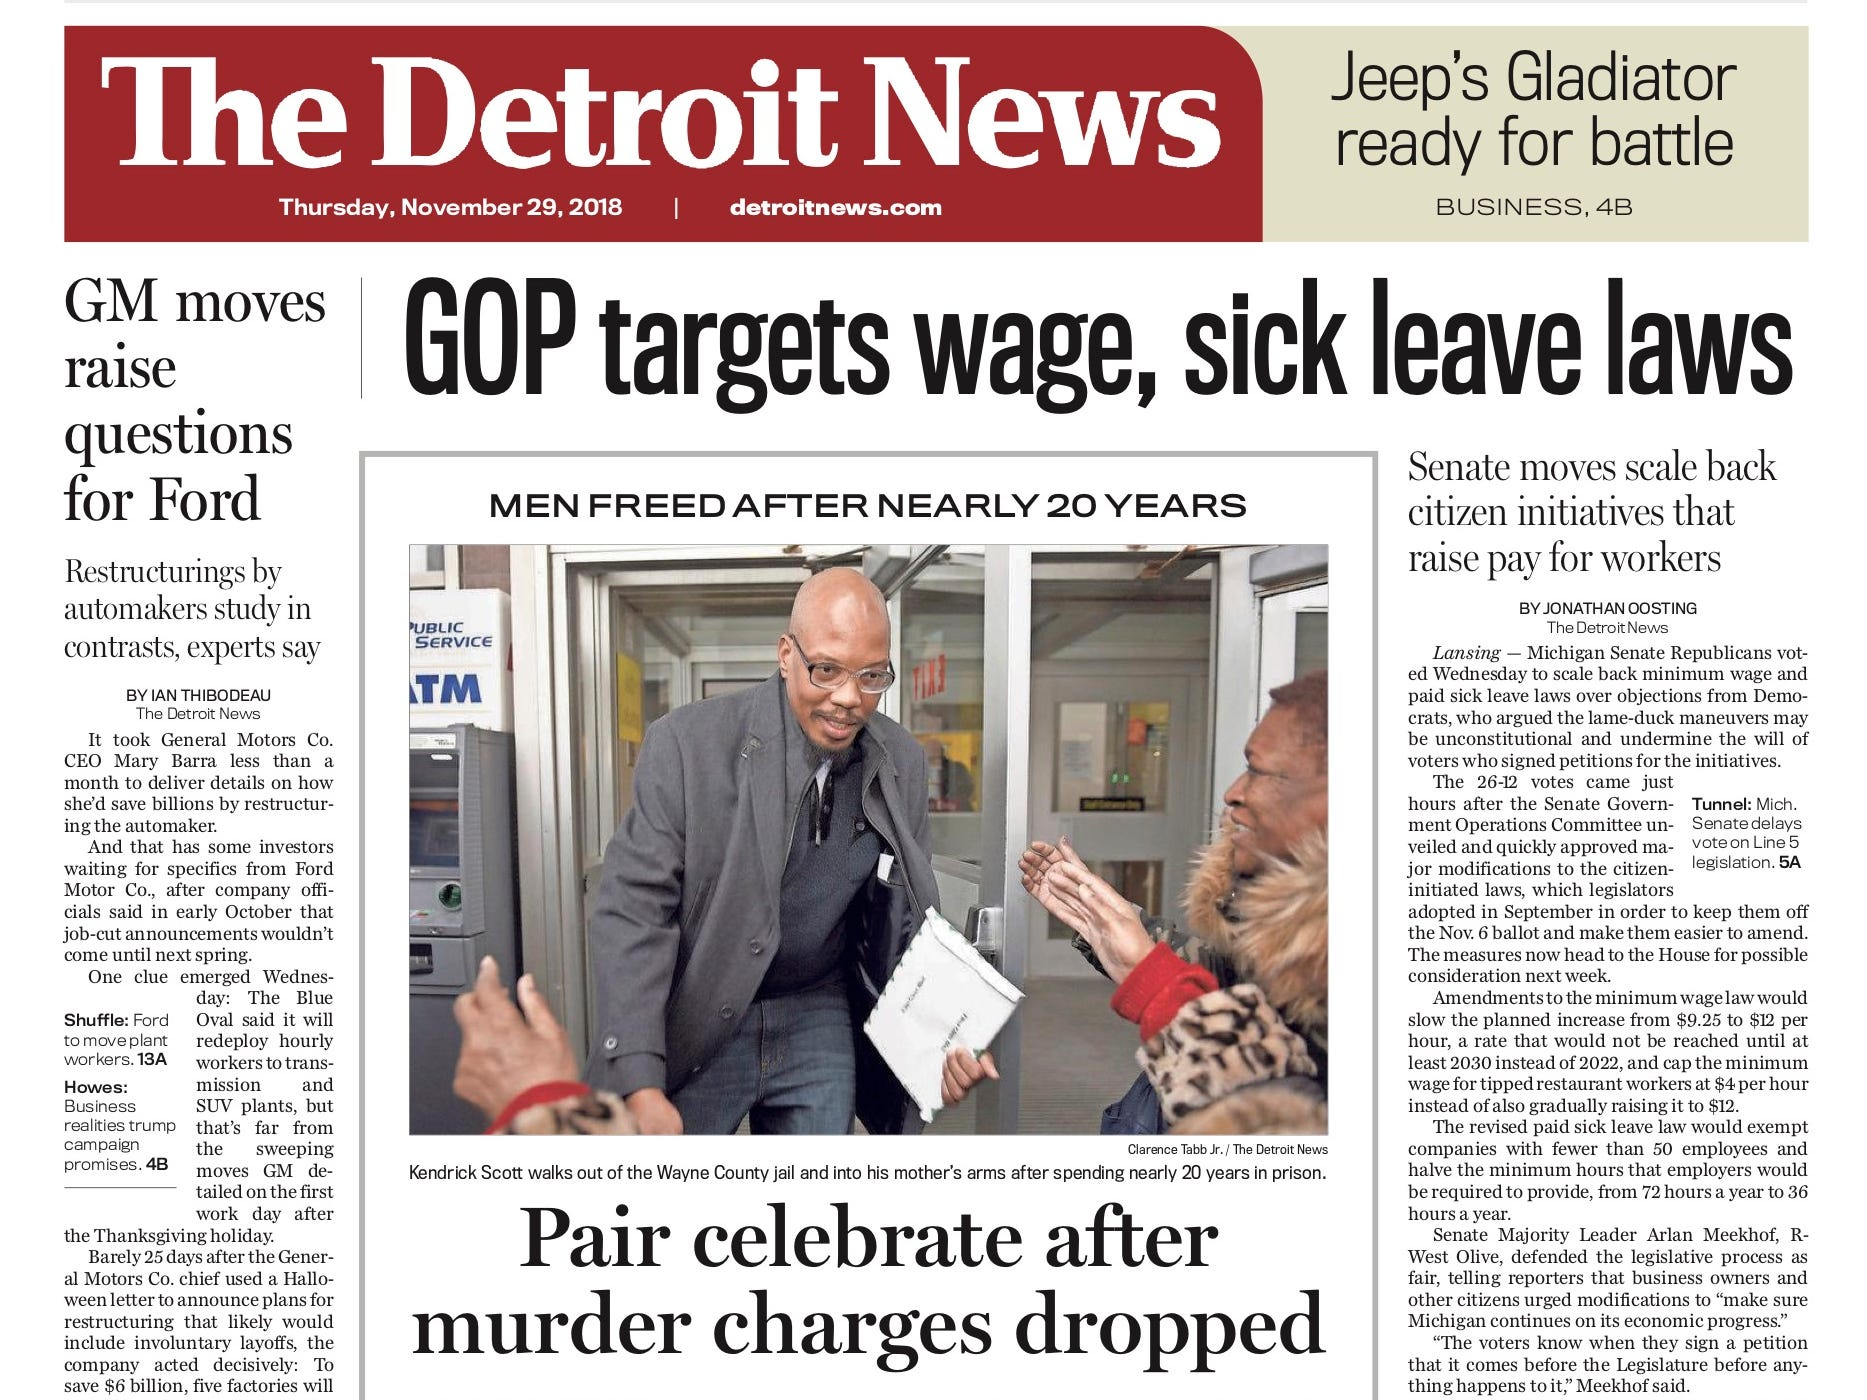 The front page of the Detroit News on November 29, 2018.